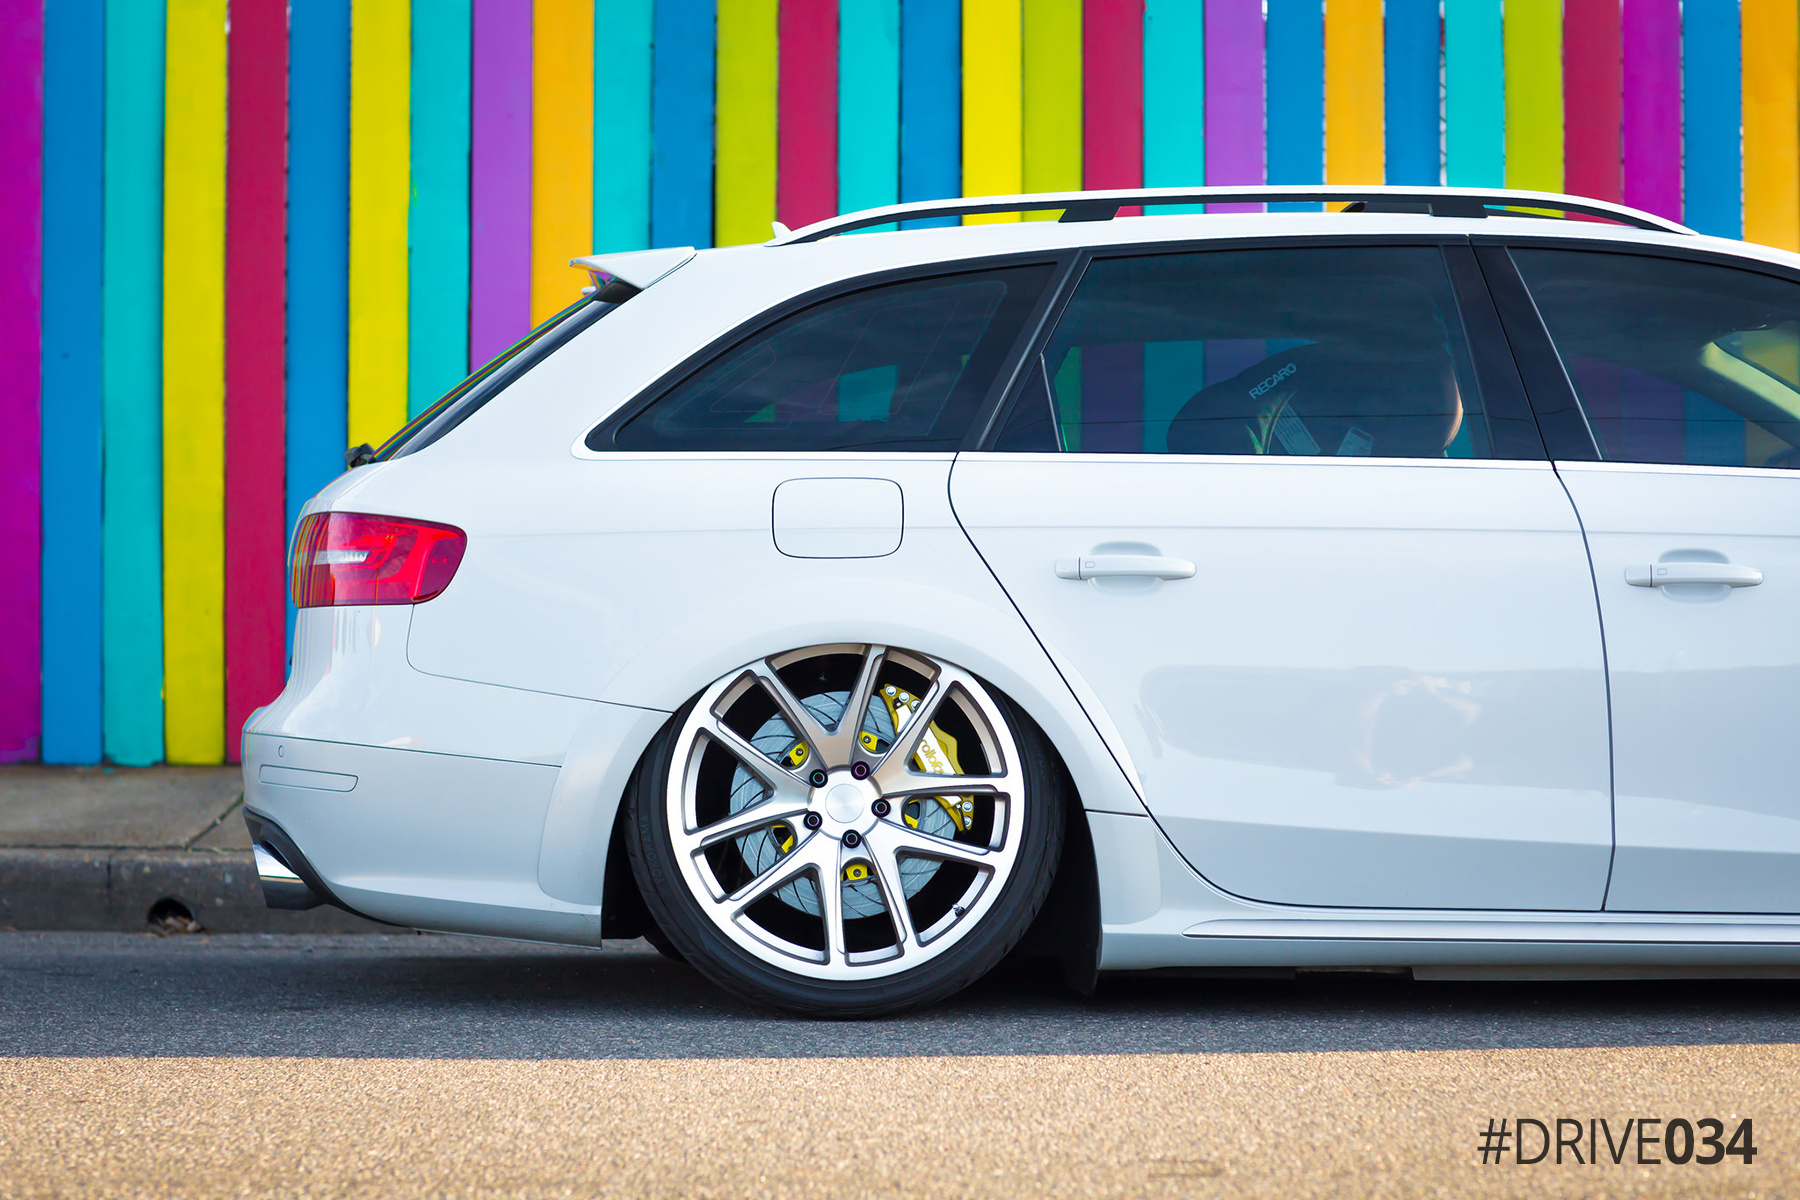 Modded B8.5 Audi Allroad with Rotiform Wheels